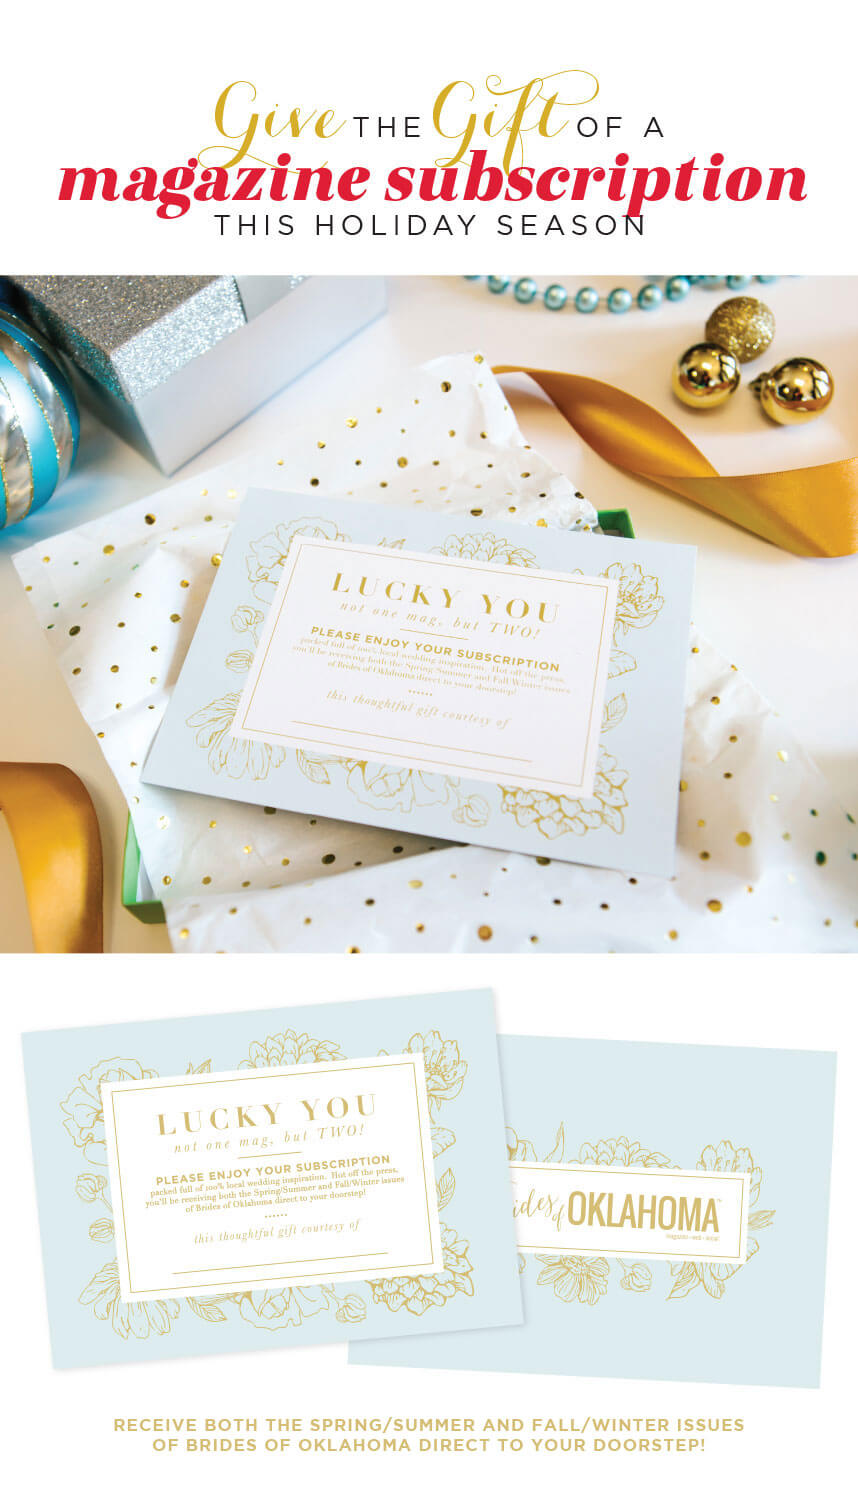 Holidaygiftguide_subscription-BOO_EDIT